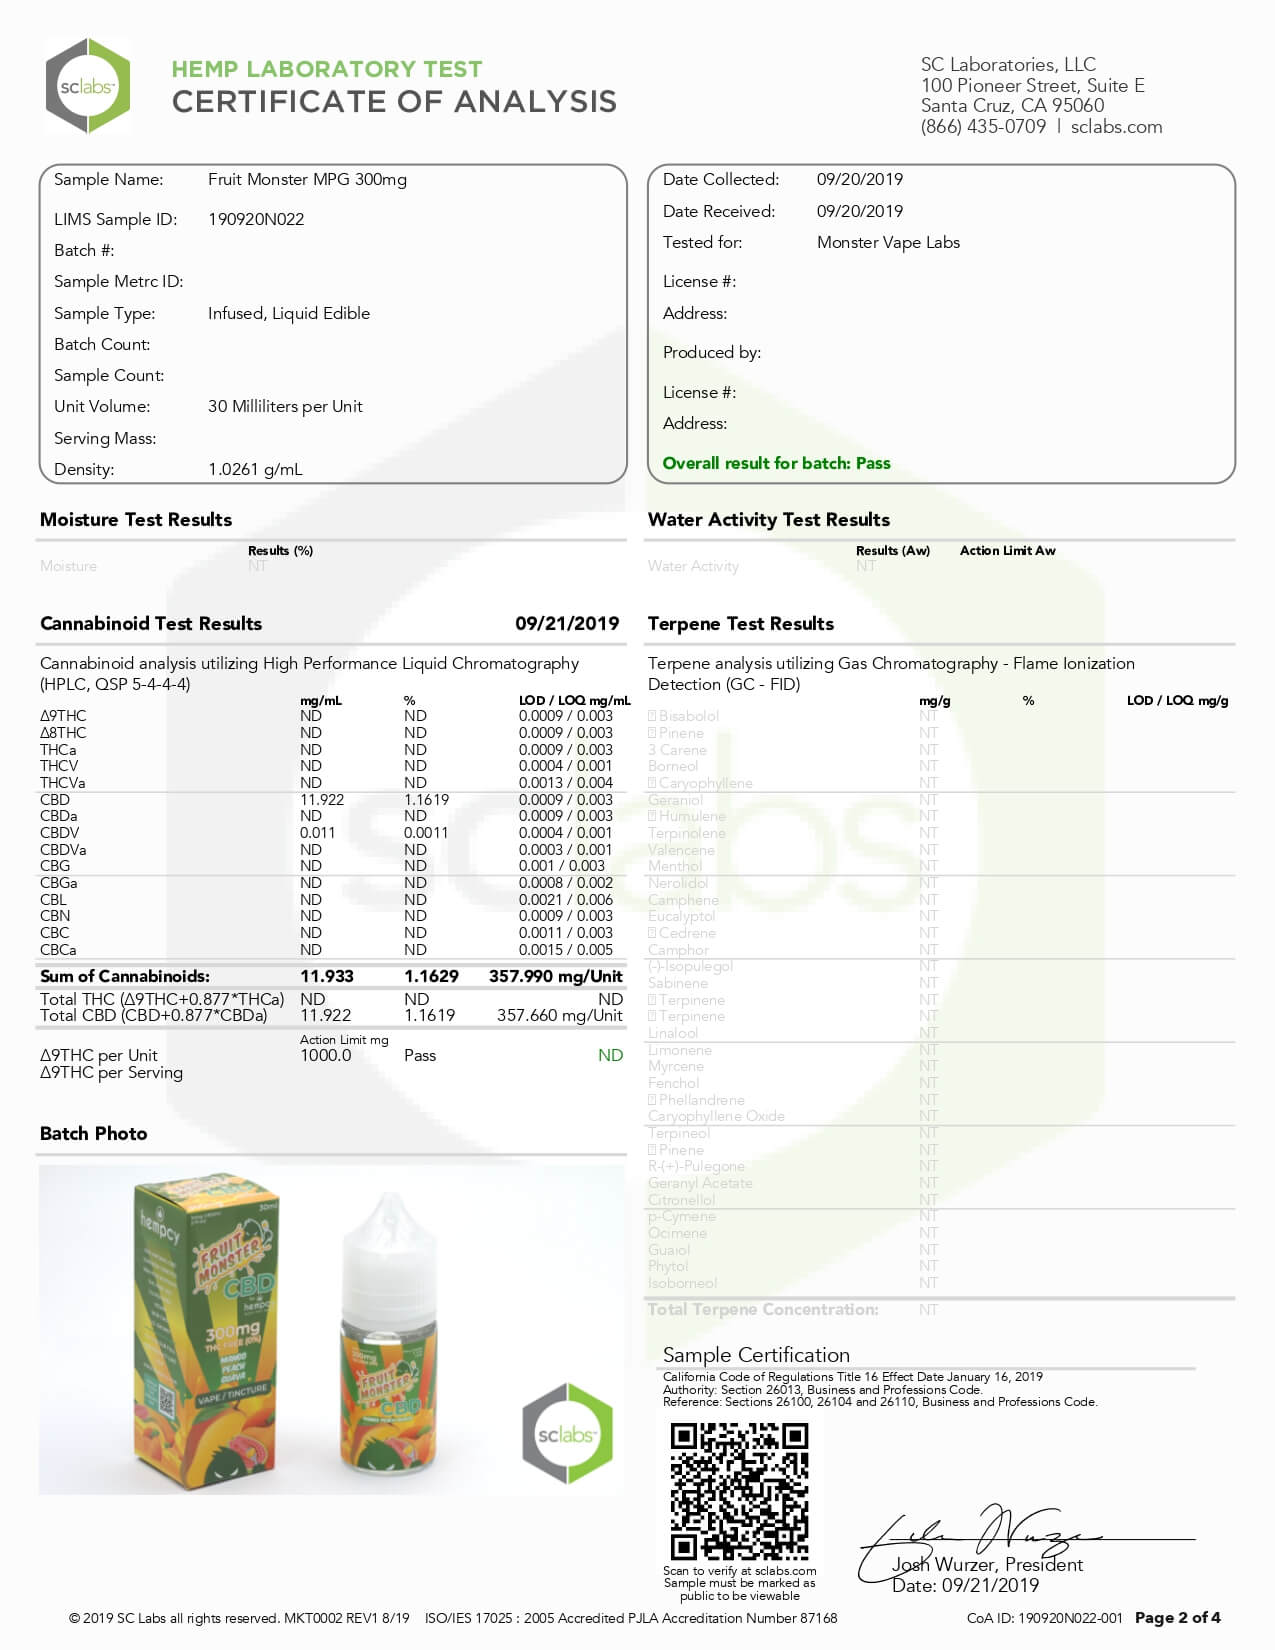 Fruit Monster CBD Vape Mango Peach Guava 300mg Lab Report